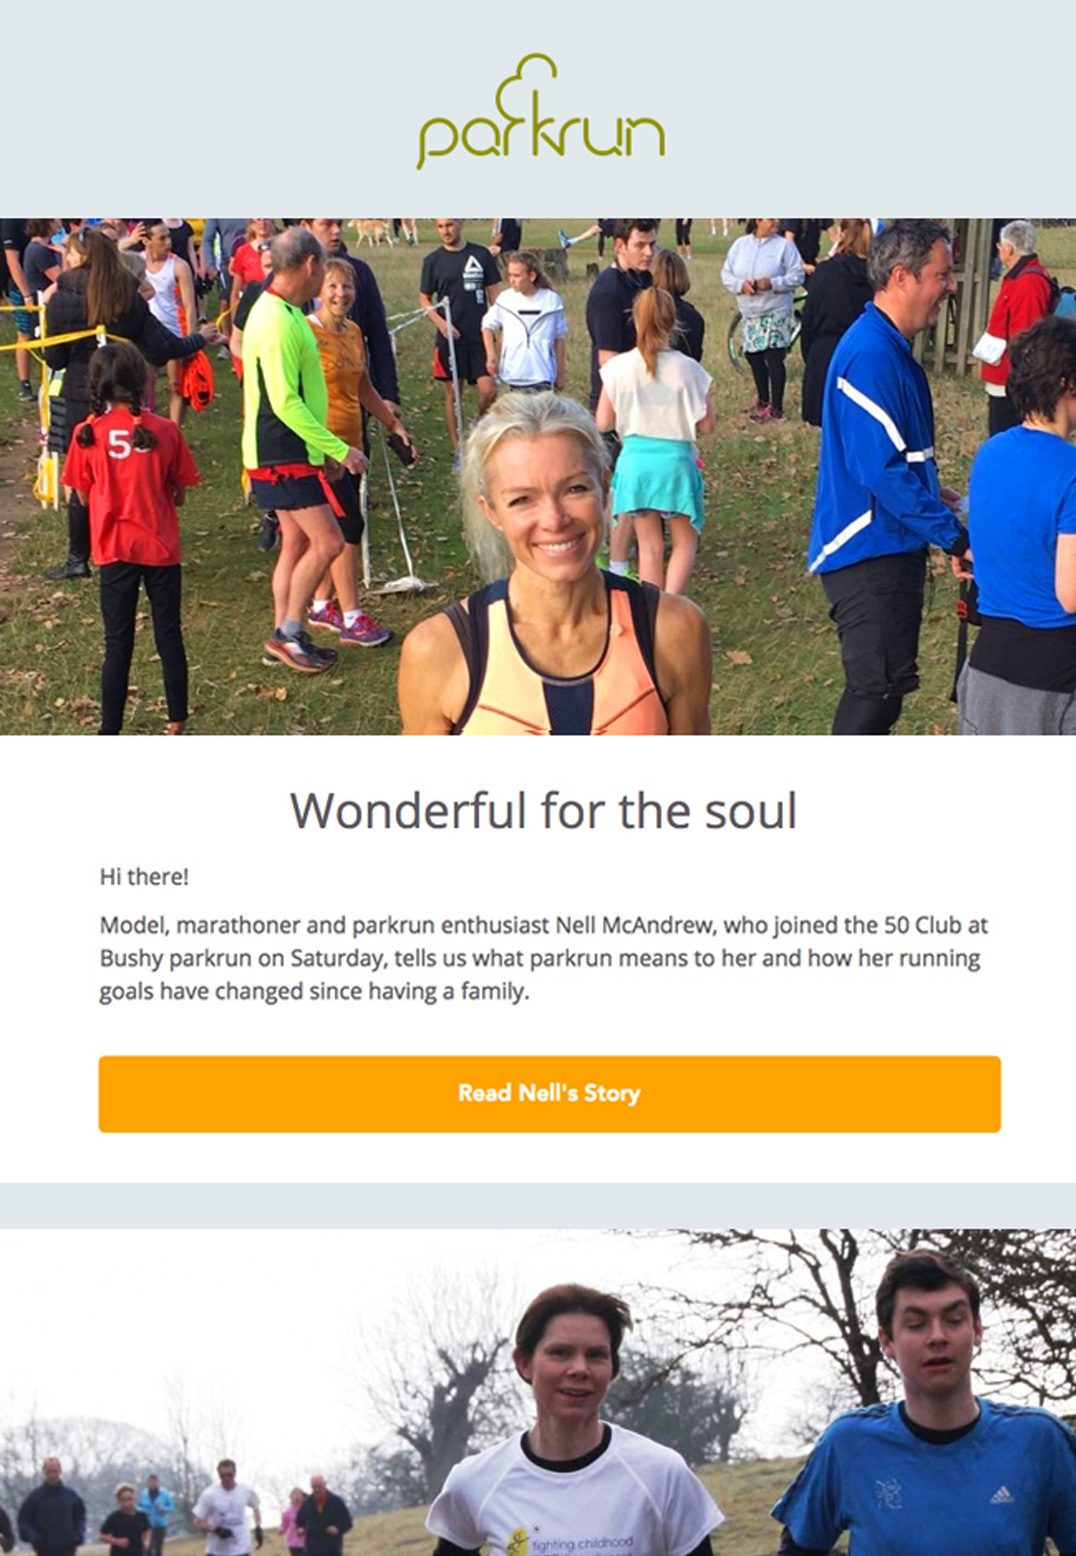 Parkrun - Nonprofit Email Marketing – Compelling Story